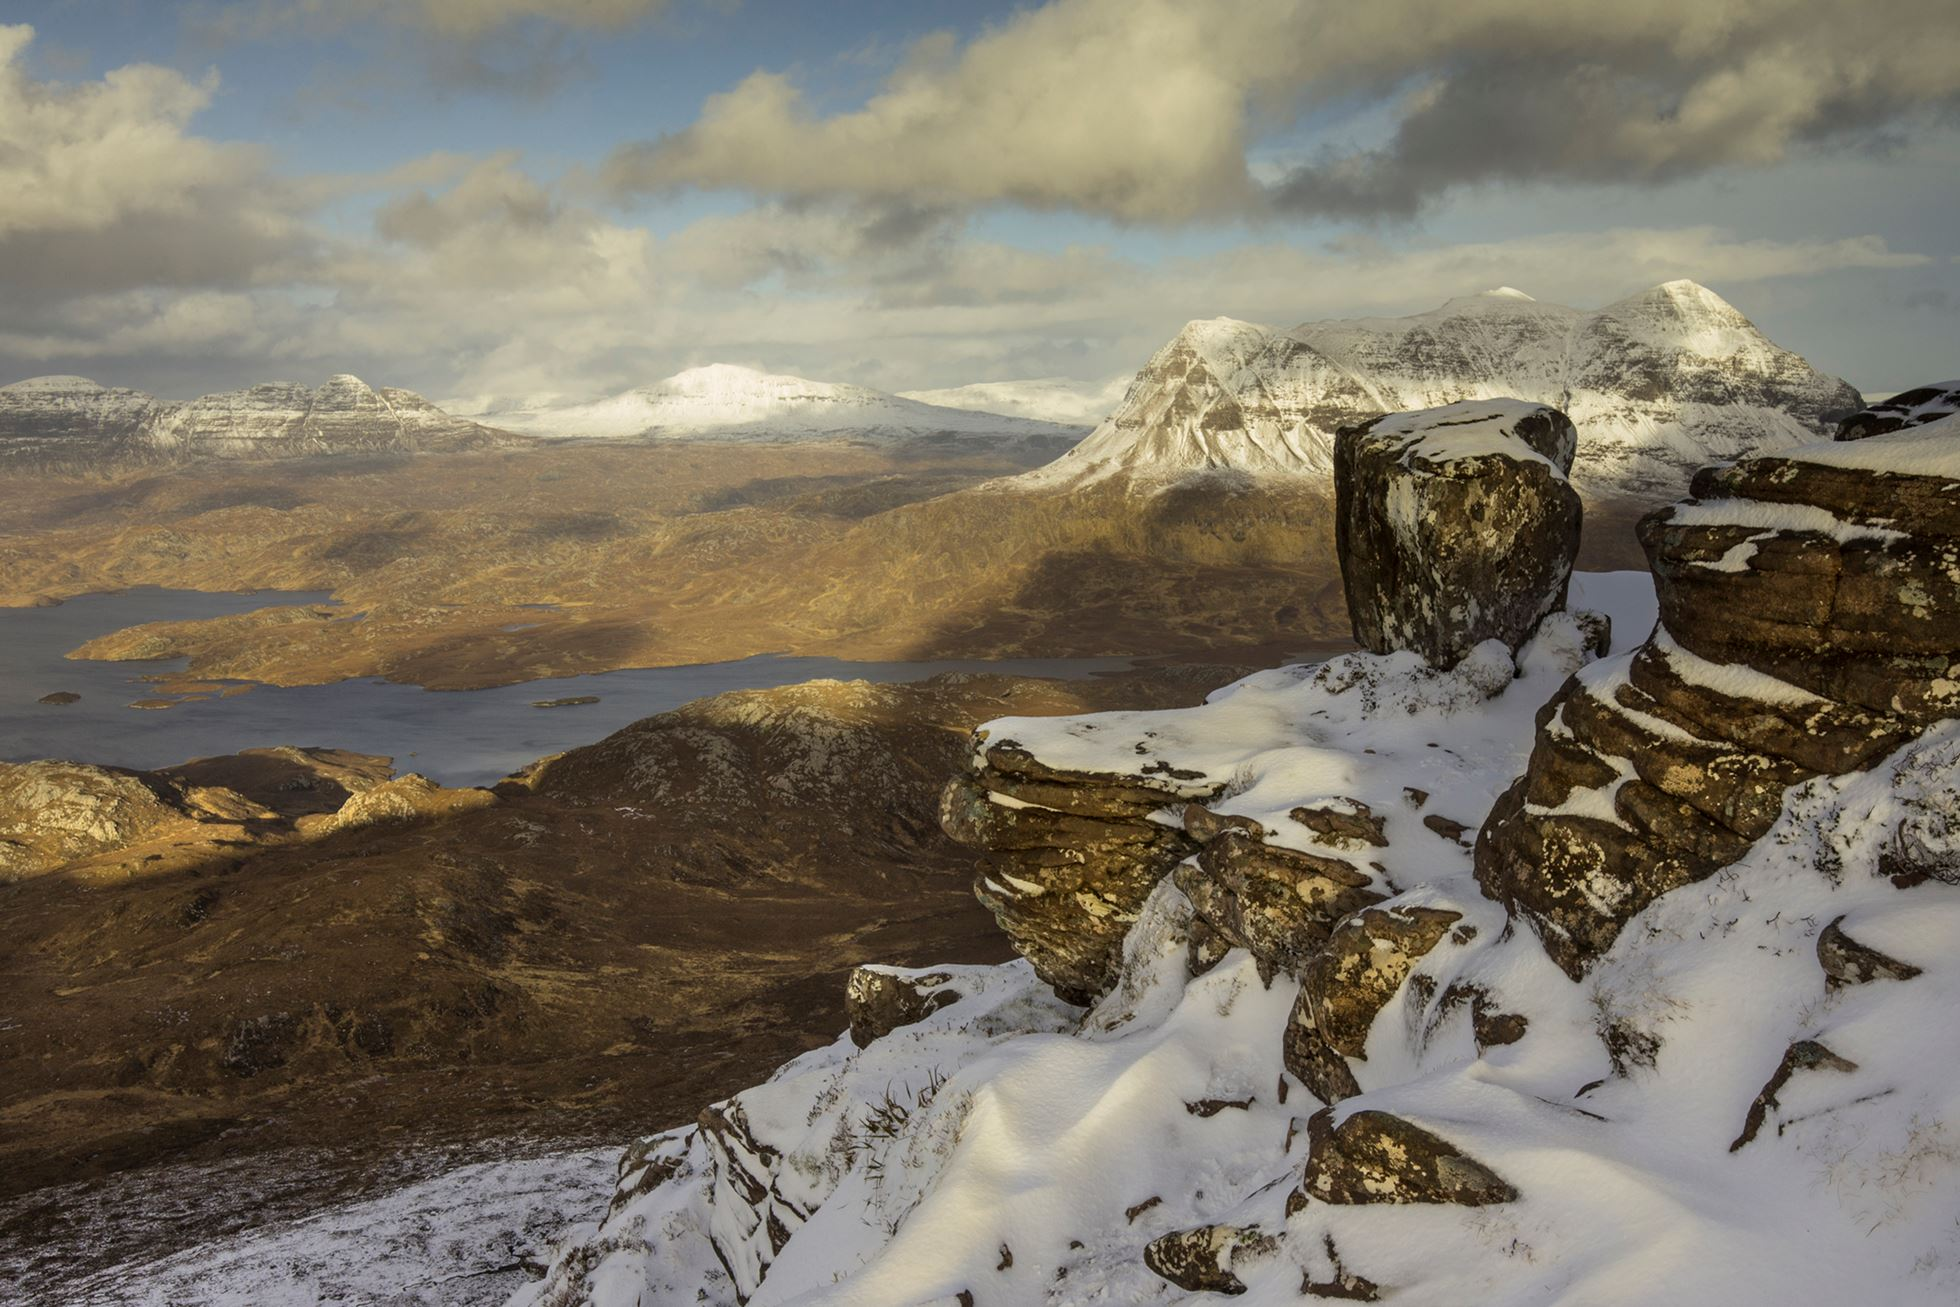 View across Inverpolly Forest from top of Stac Pollaidh, Coigach, Scotland.